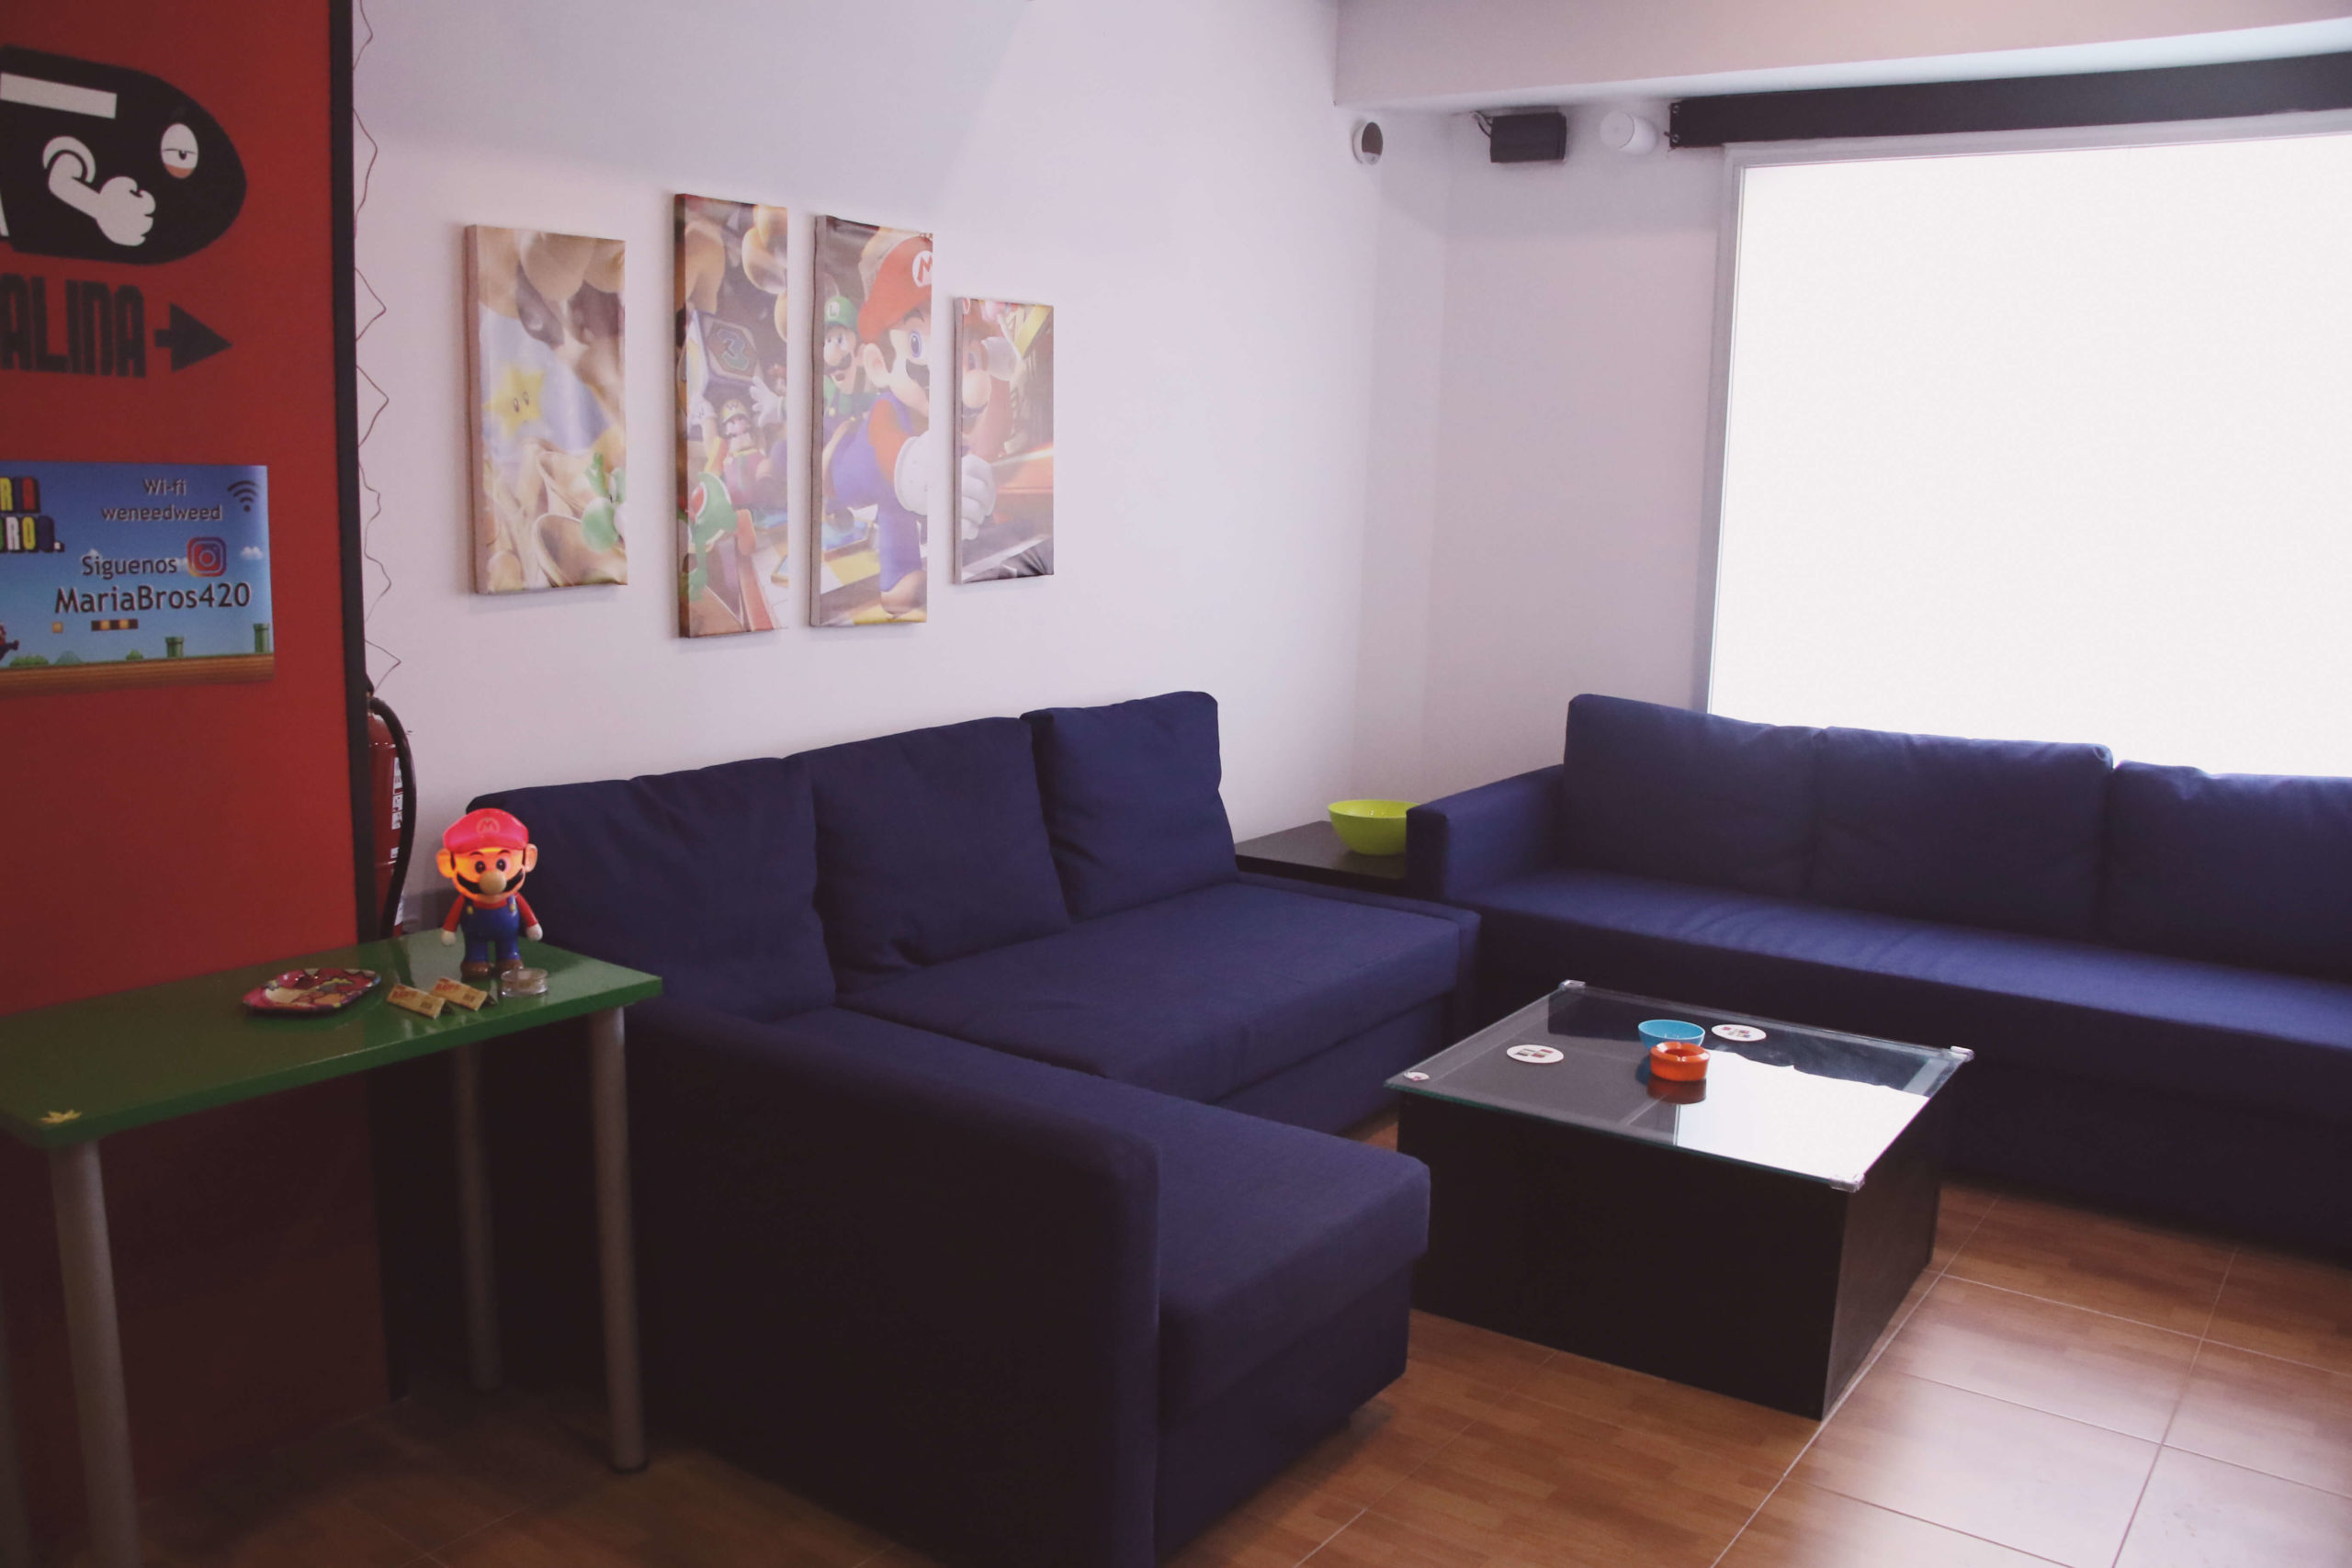 room decorated with video games theme and sofa